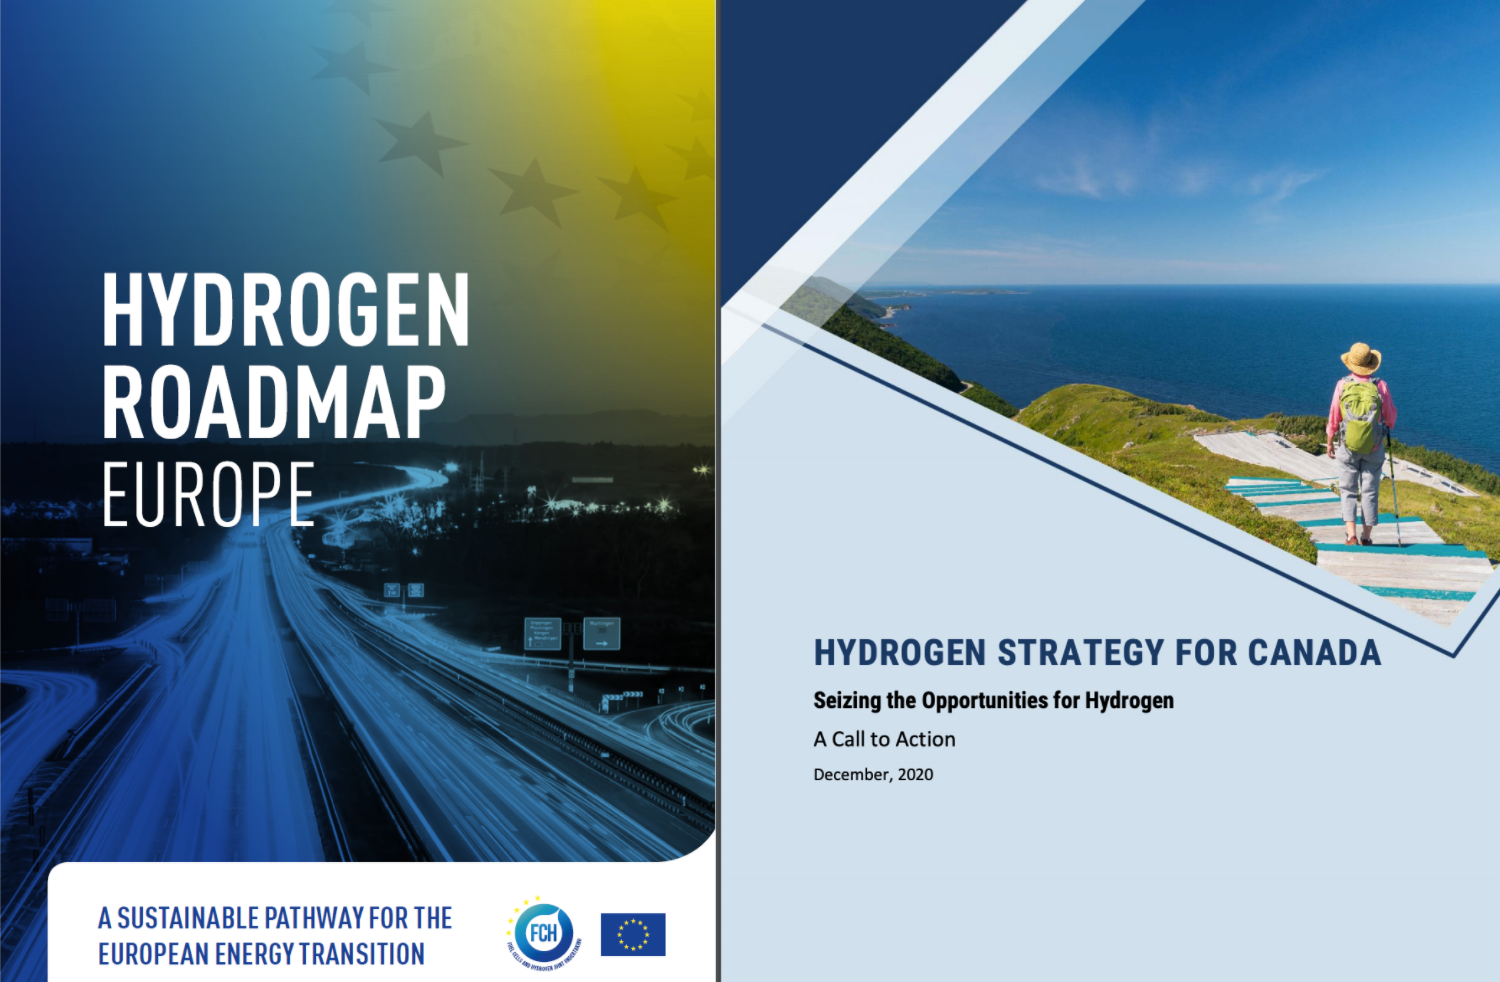 Canadian and EU hydrogen roadmap cover pages